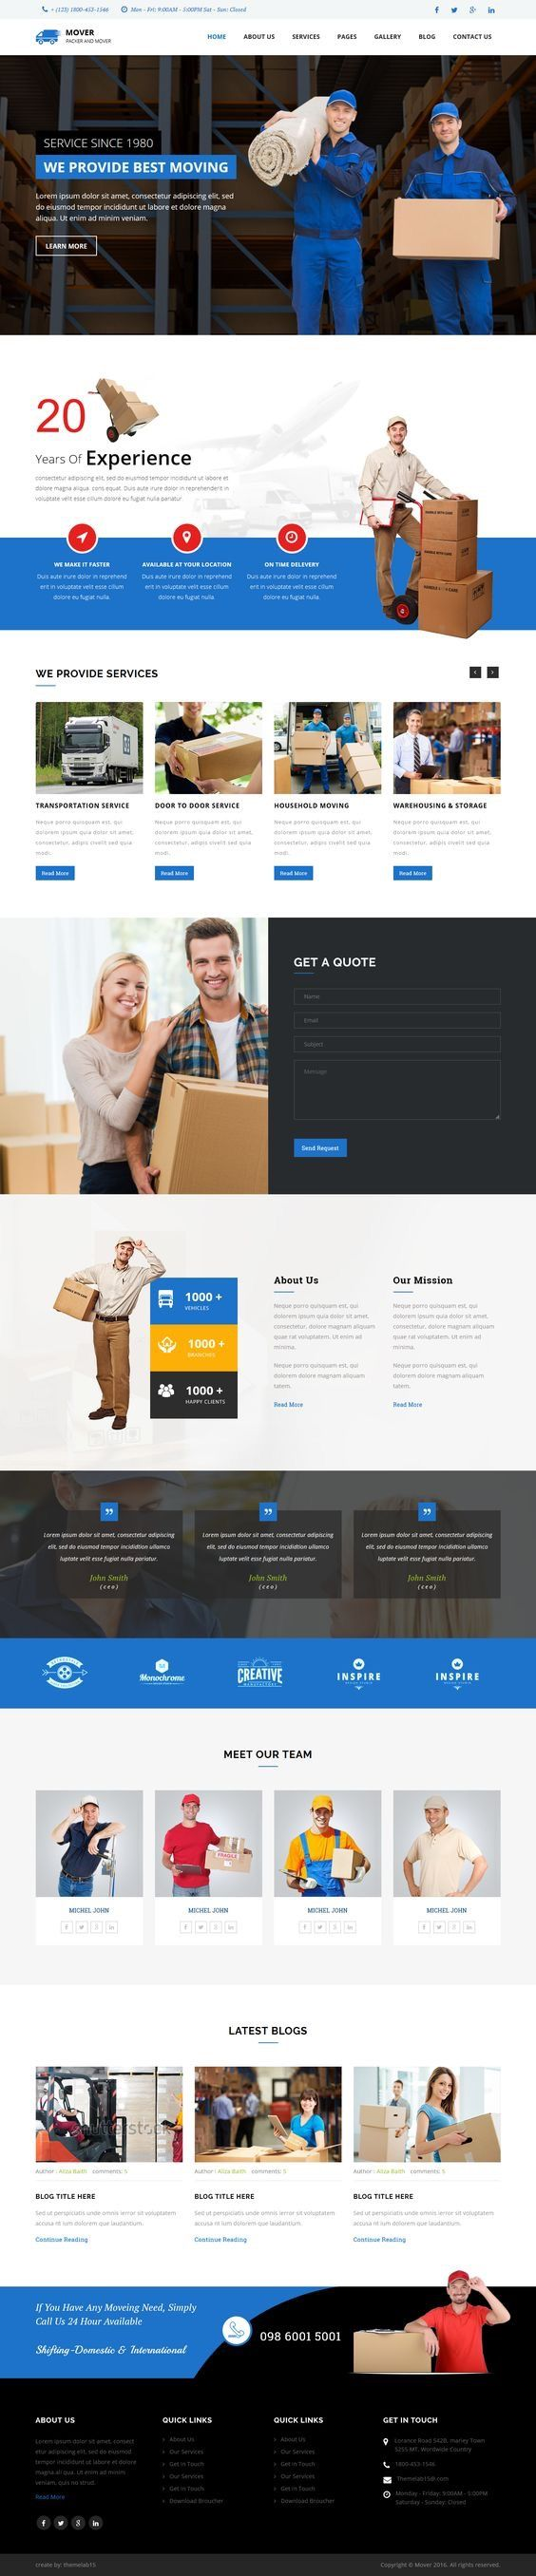 Movers - Company HTML Template. Download: https://themeforest.net/item/movers-company-html-template/16391694?ref=skarin